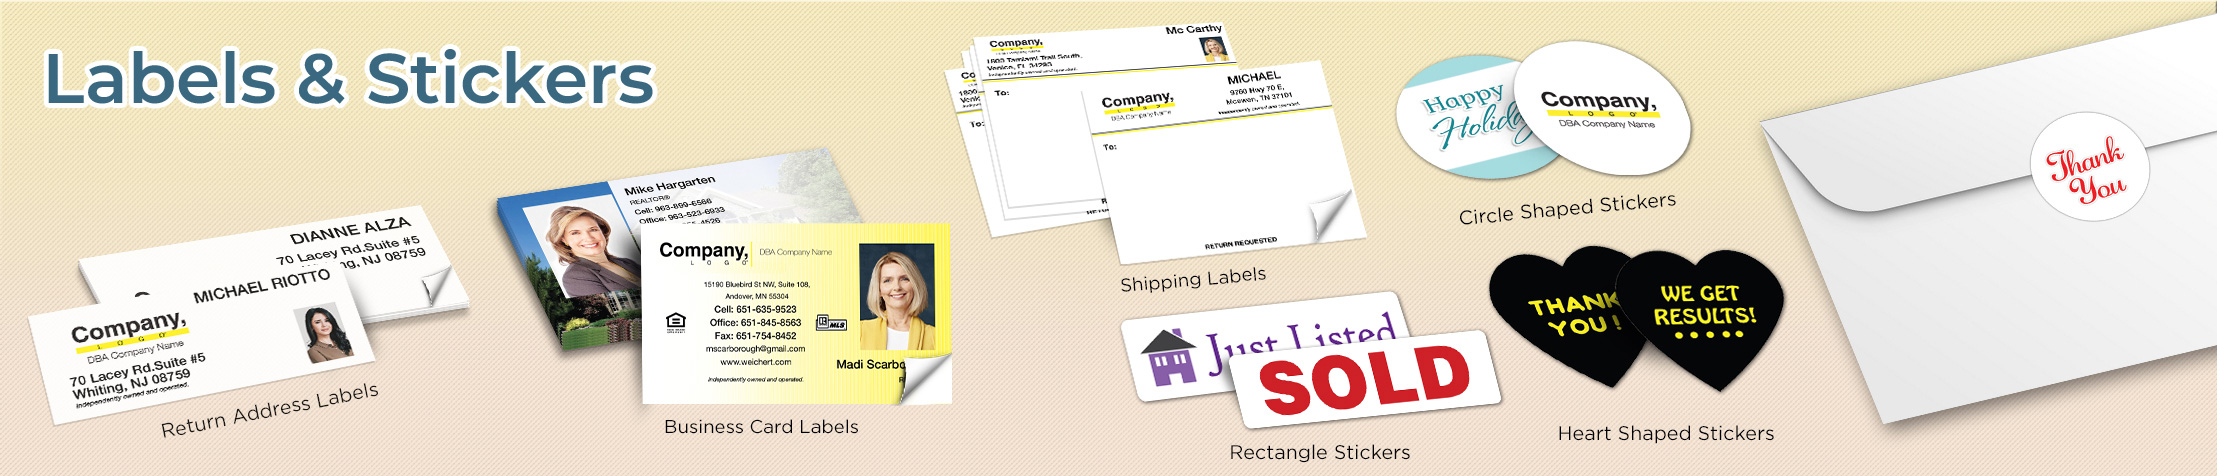 Weichert Real Estate Labels and Stickers - Weichert  business card labels, return address labels, shipping labels, and assorted stickers | BestPrintBuy.com